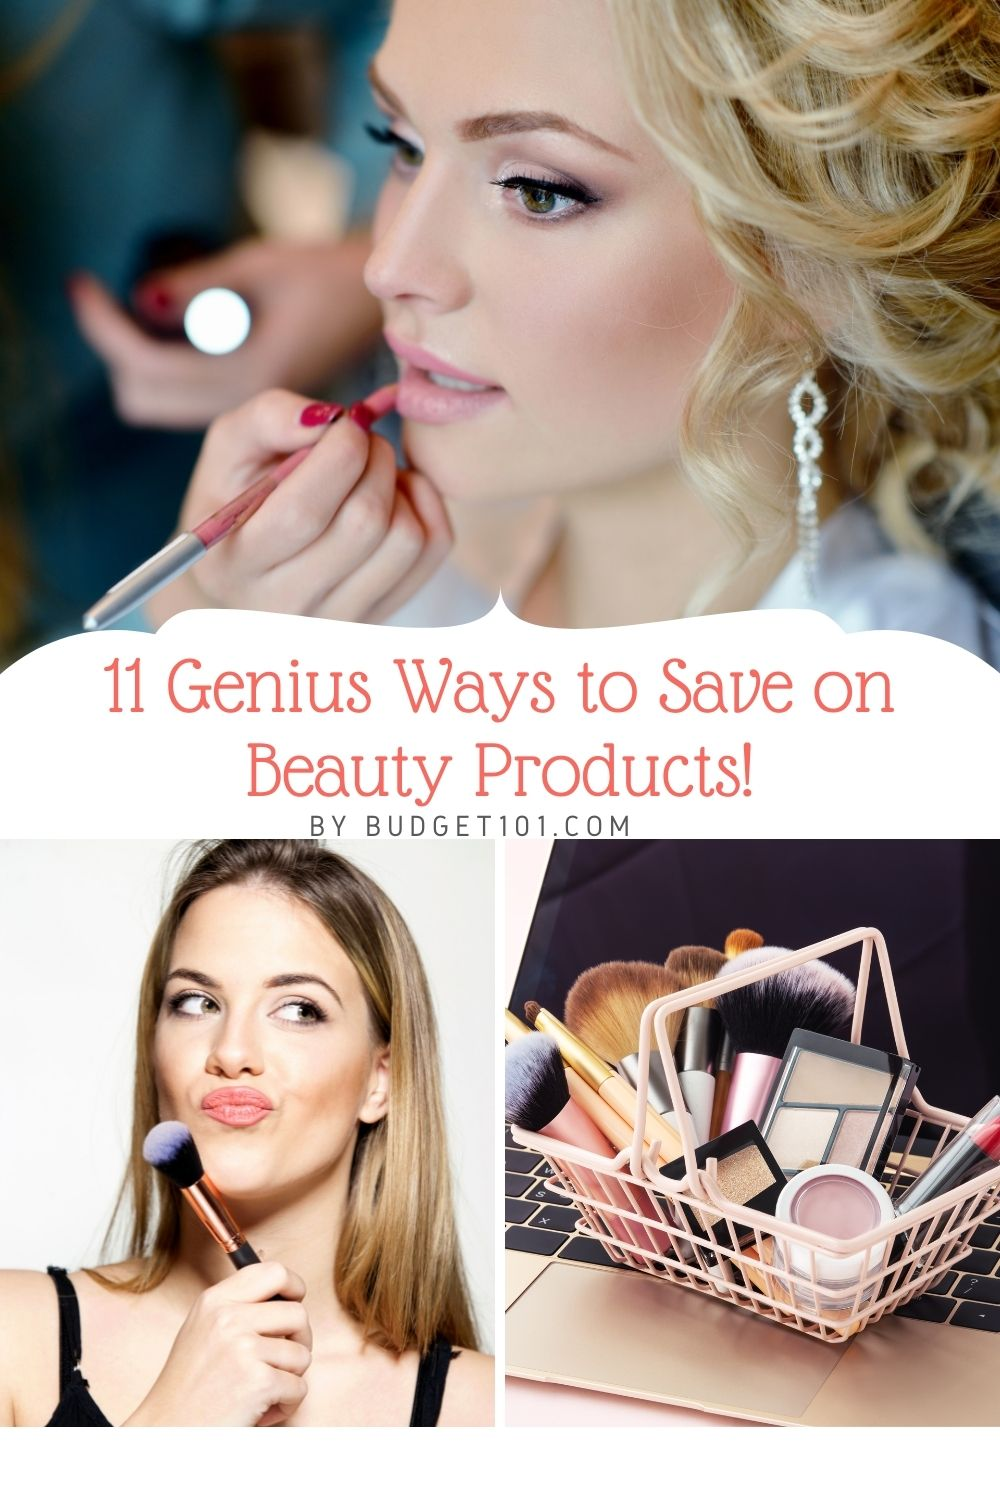 It's no secret that beauty products are expensive. It seems like every week there is a new product hitting the shelves, and it just so happens to be more than your paycheck can afford. The best way to save money with beauty products is by following these 11 genius tips! Who knew you could get such great results without spending an arm and a leg? These pointers will have you looking good for less in no time at all. Read this article NOW! #BeautyProducts #Beauty #MakeUp #Budget101 #DIY